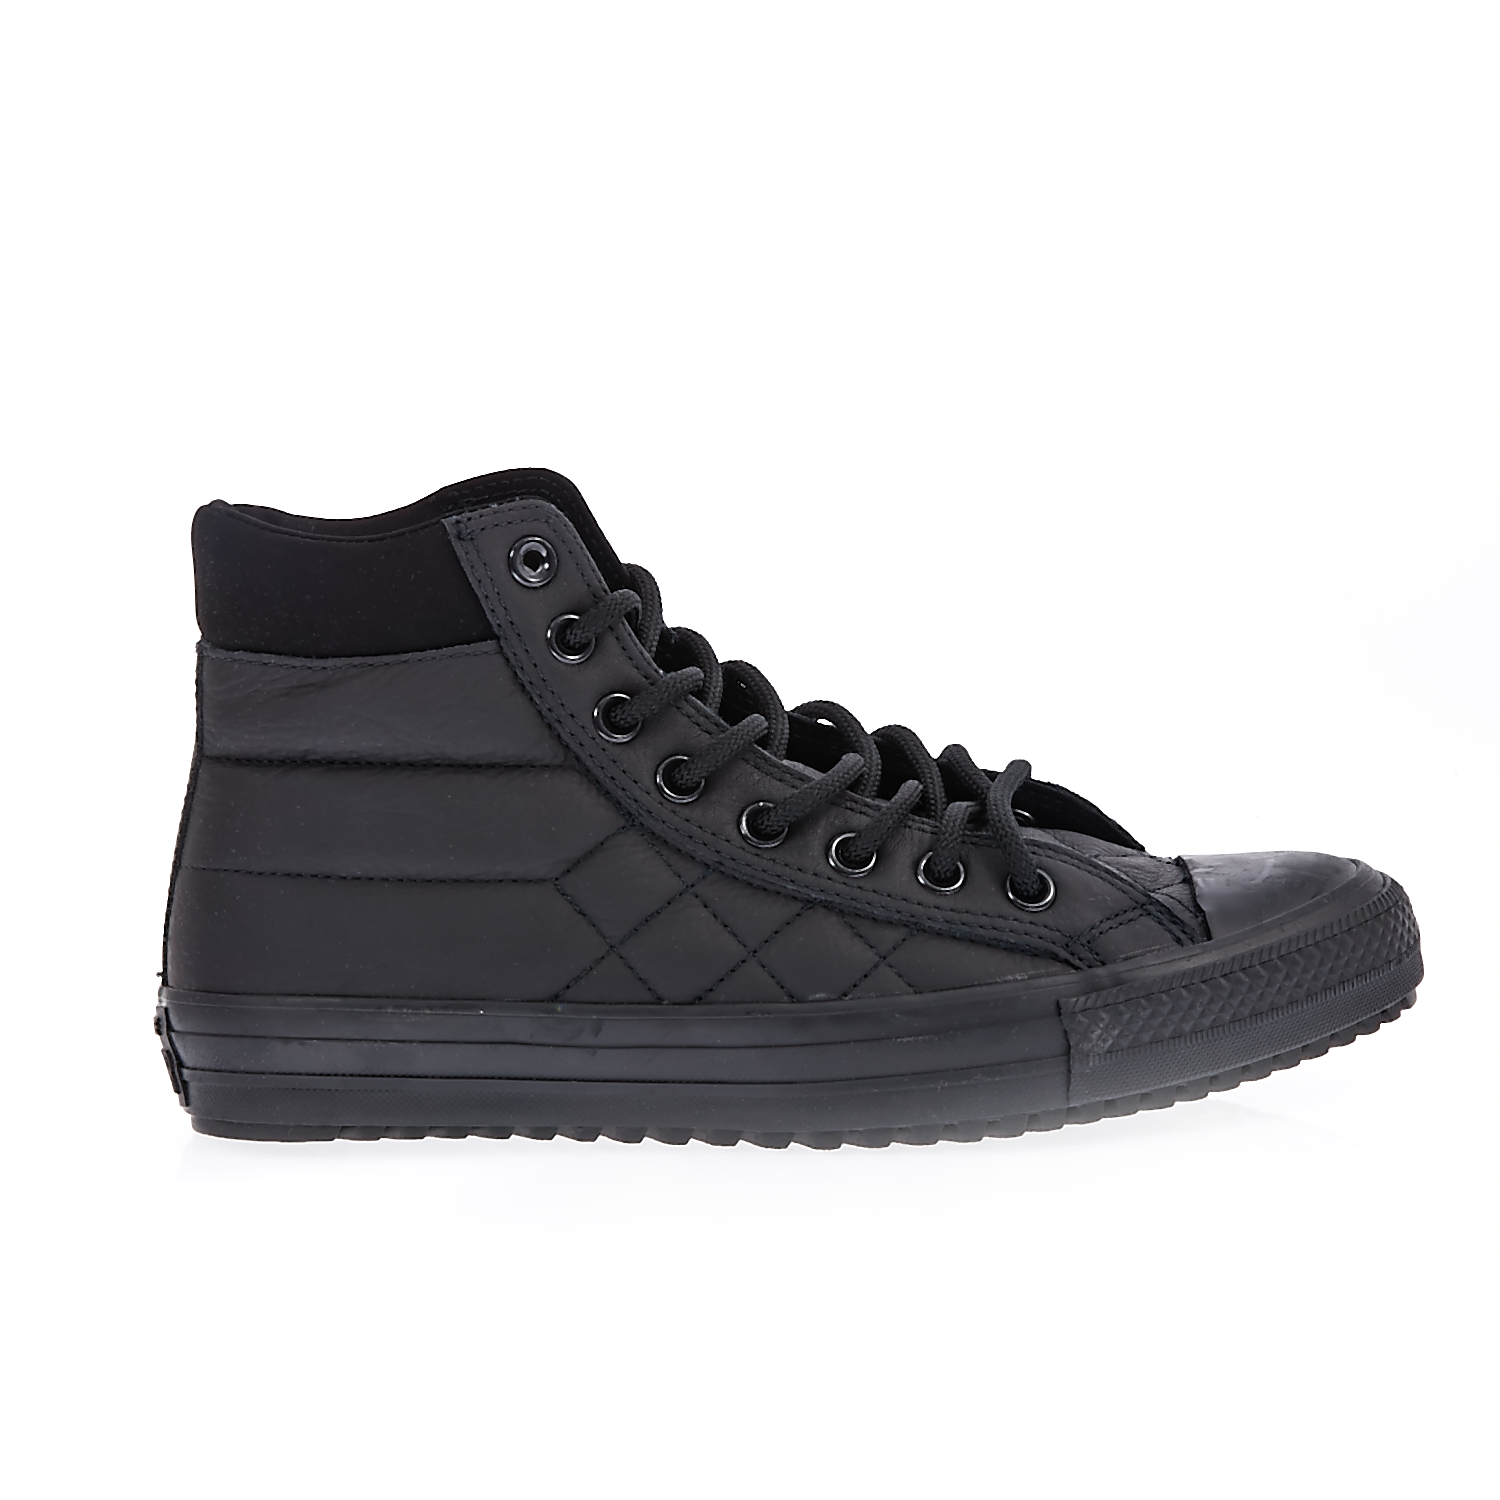 new arrival a0b1c 52cd9 Factoryoutlet CONVERSE – Unisex παπούτσια Chuck Taylor All Star Converse  μαύρα